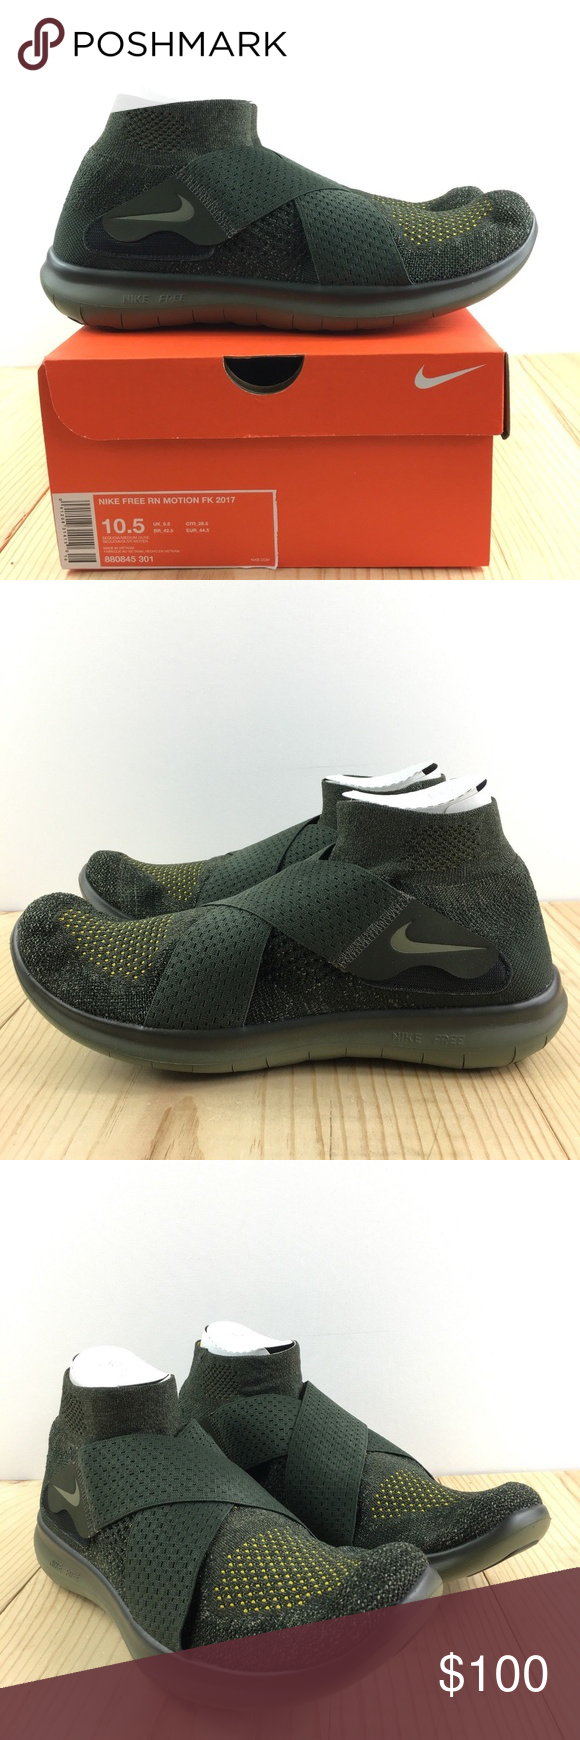 3da69bc96ac19 Nike Free Run Motion Flyknit 2017 Size 10.5 Mens Nike Free Run Motion  Flyknit 2017 Mens Medium Olive Shoes Brand New with Box Color  Sequoia   Medium Olive ...